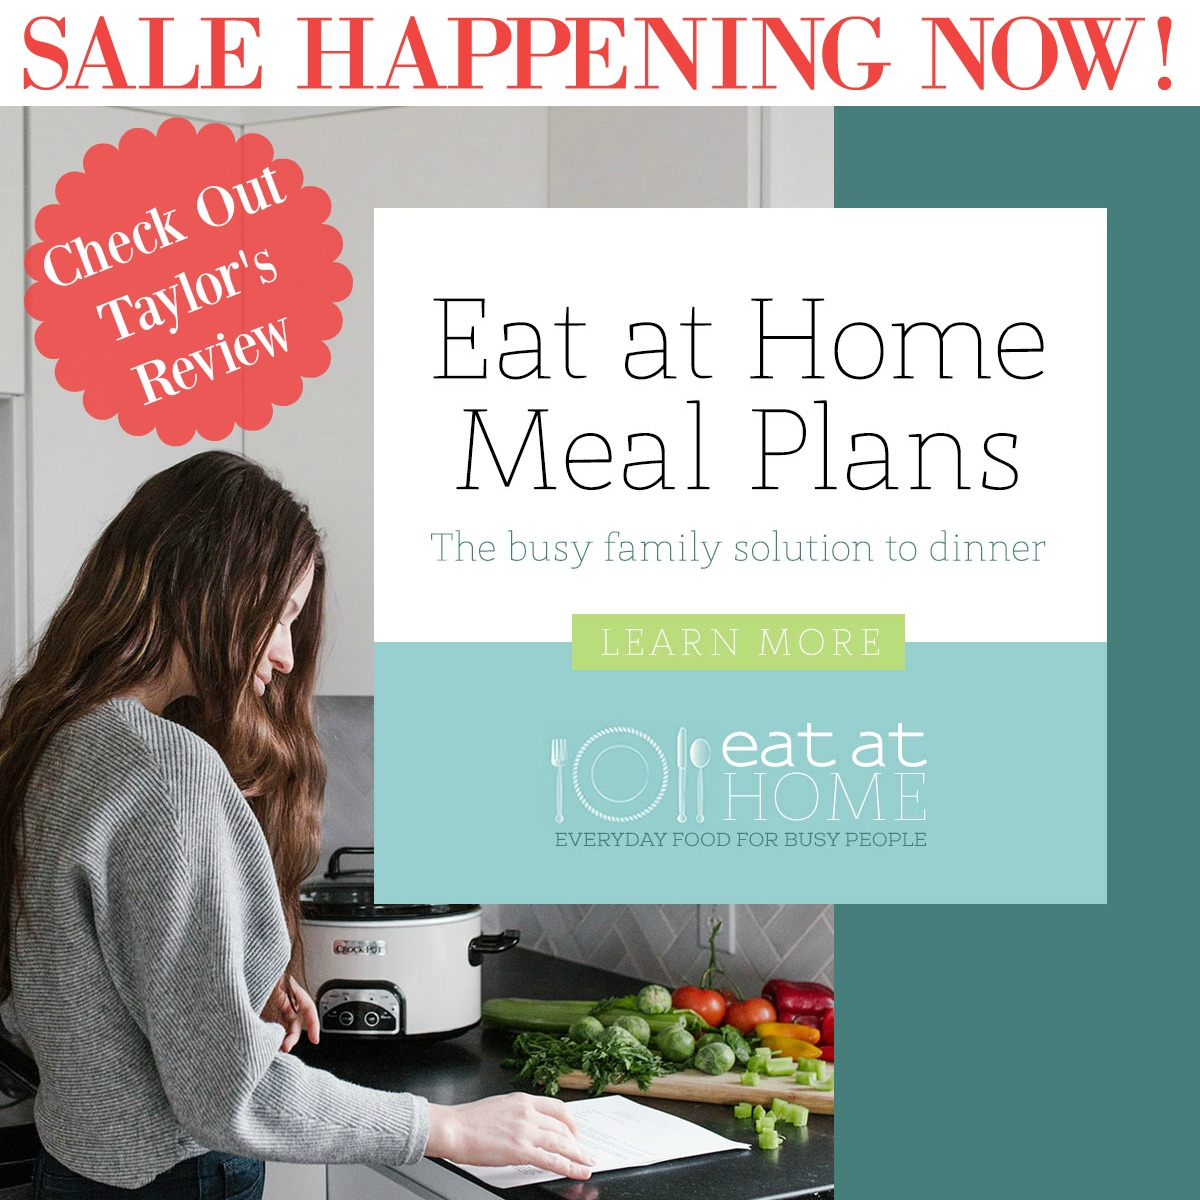 Check out Taylor's review of Eat at Home Meal Plans sale, which is currently on sale